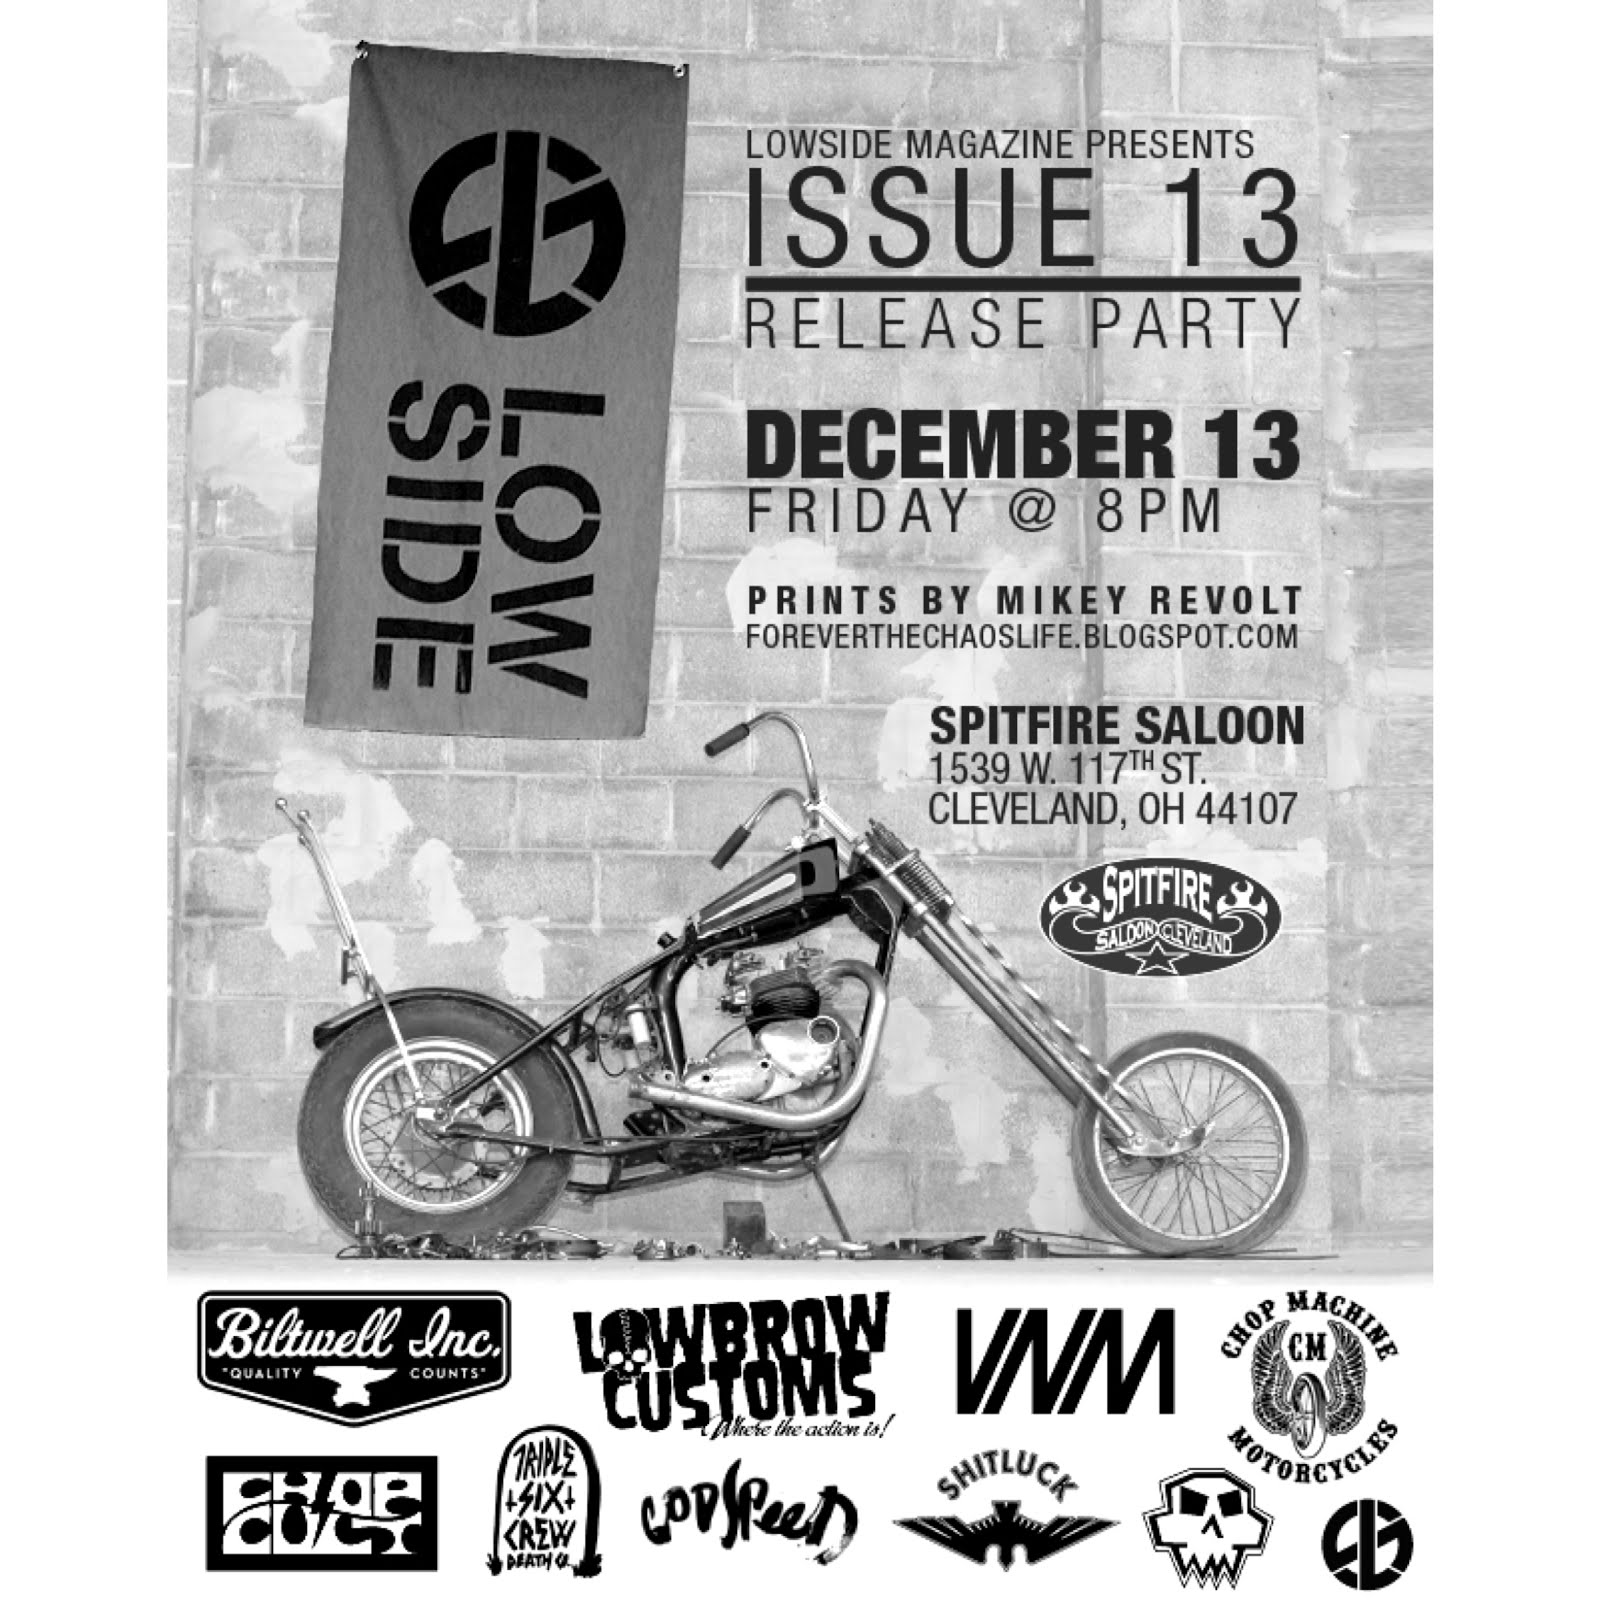 Lowside Magazine Issue 13 Release Party